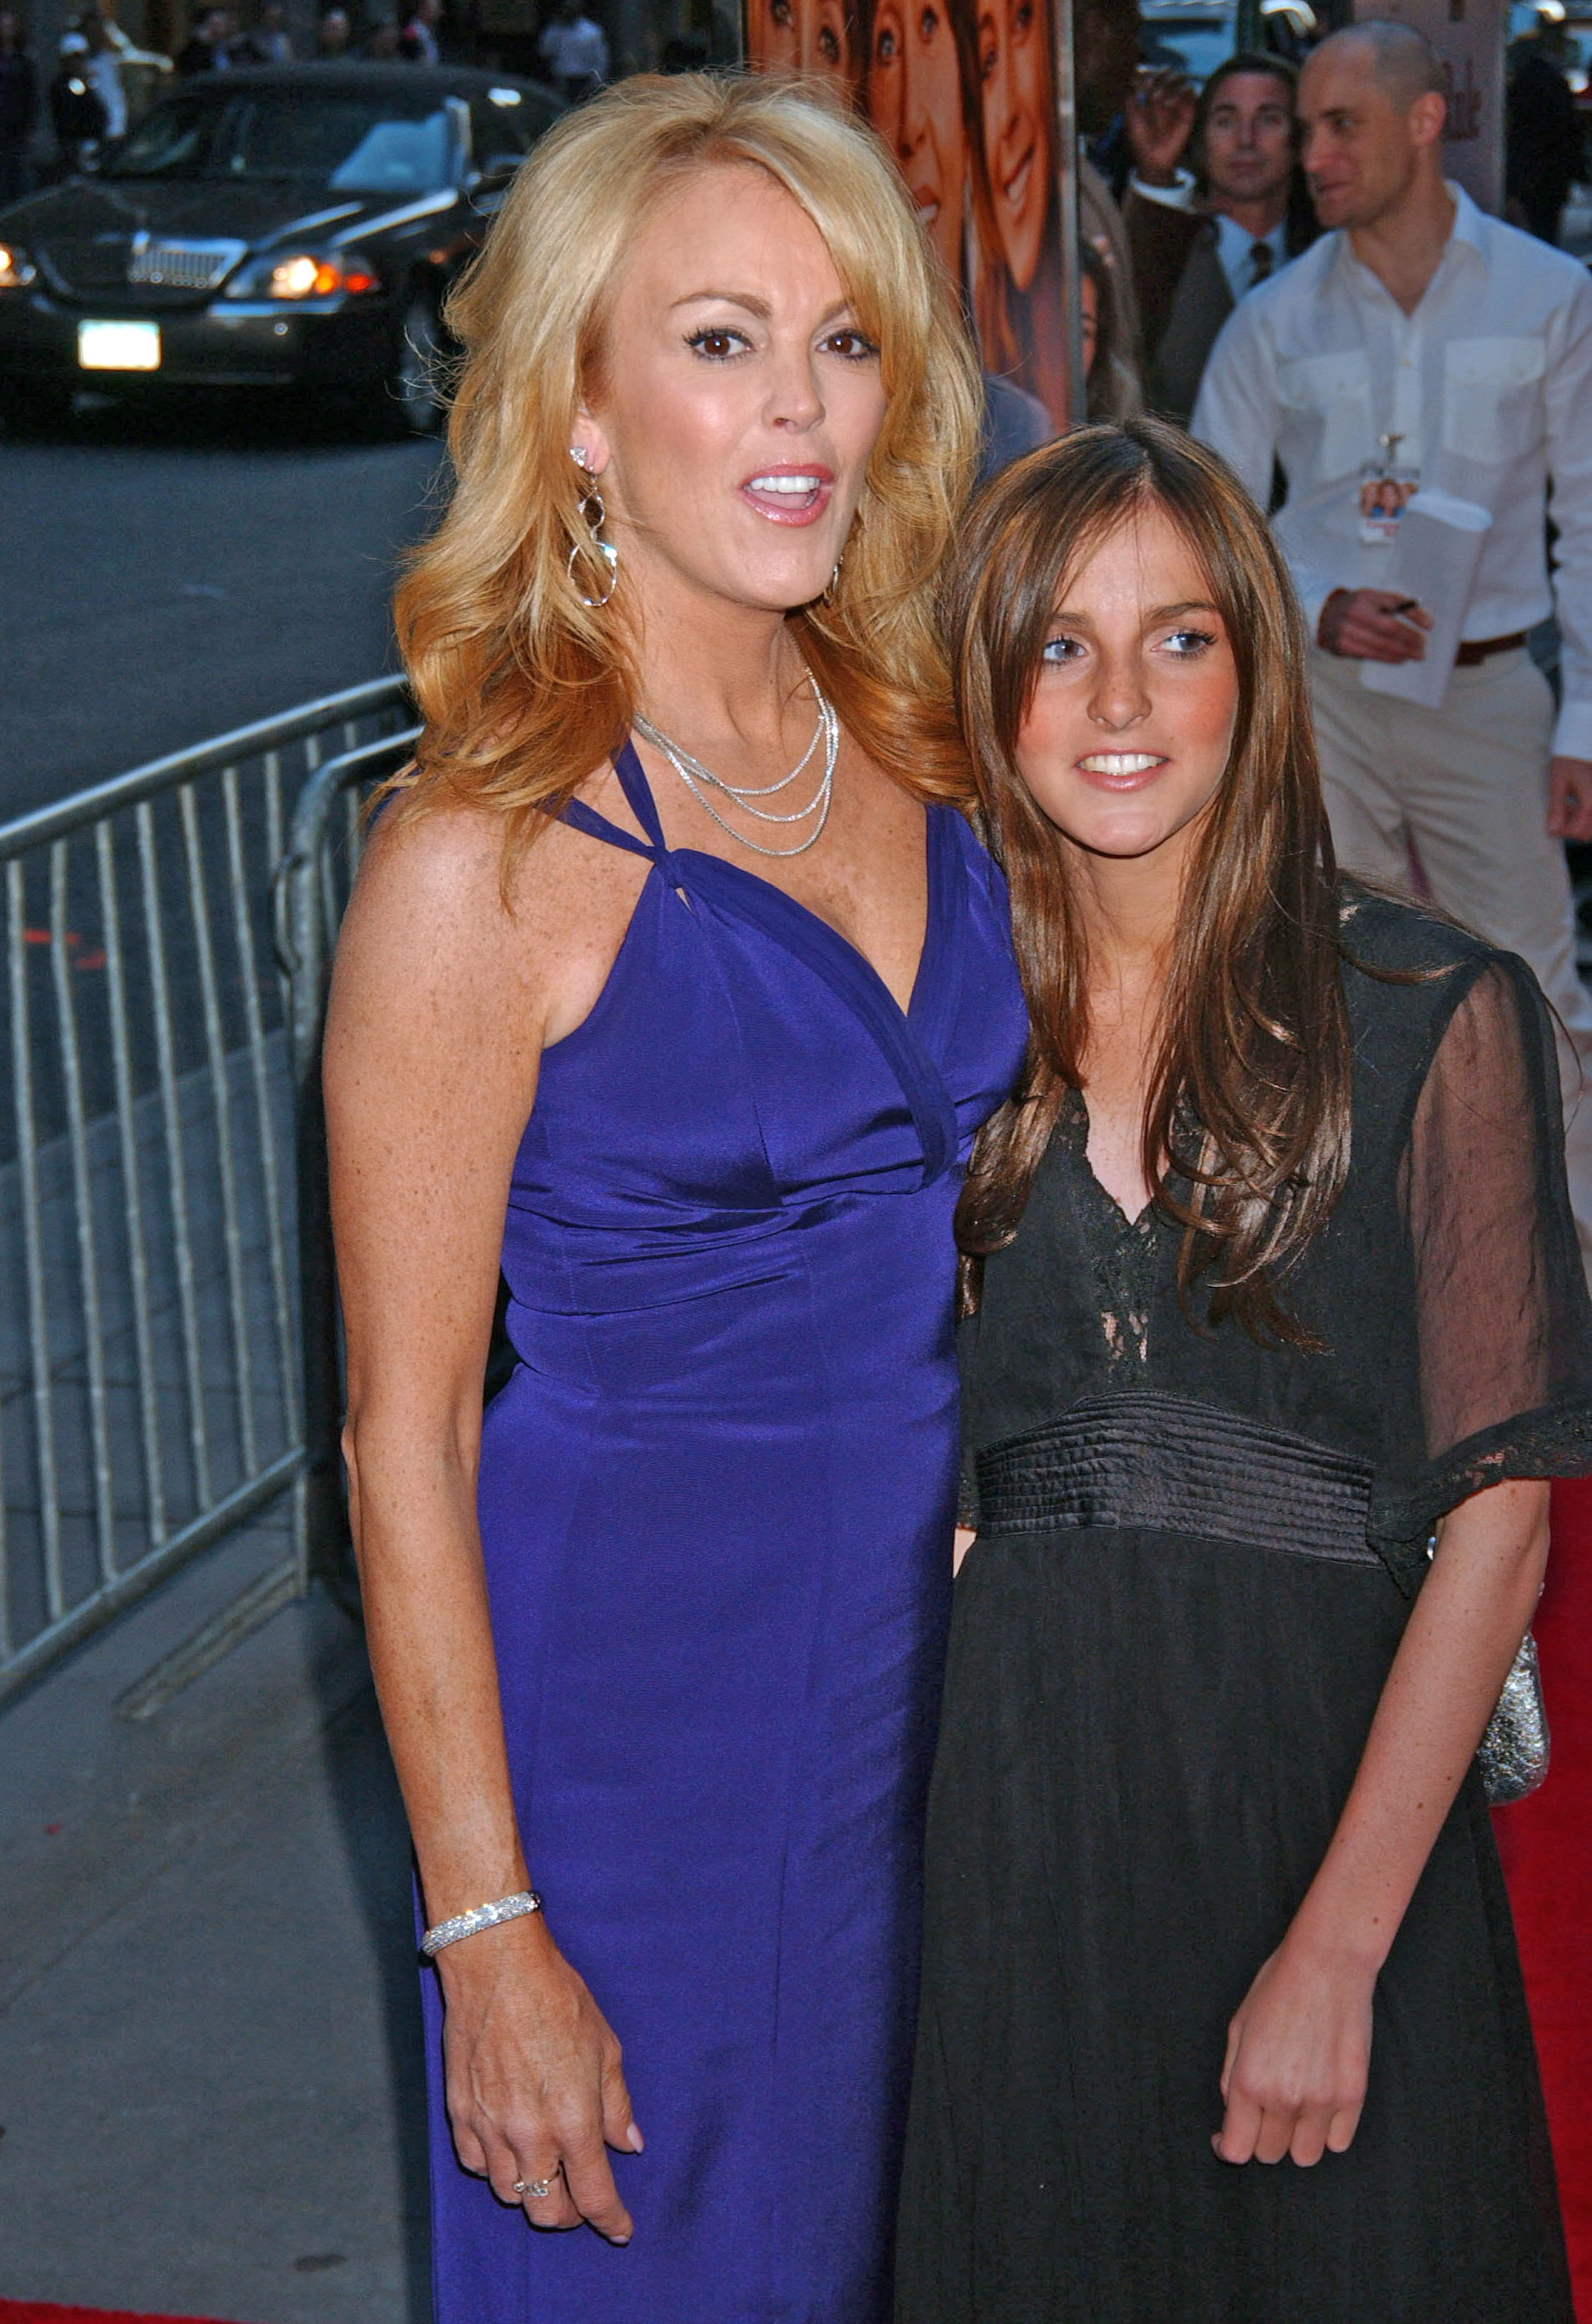 Dina Lohan Gets Kudos for, Well, Nothing